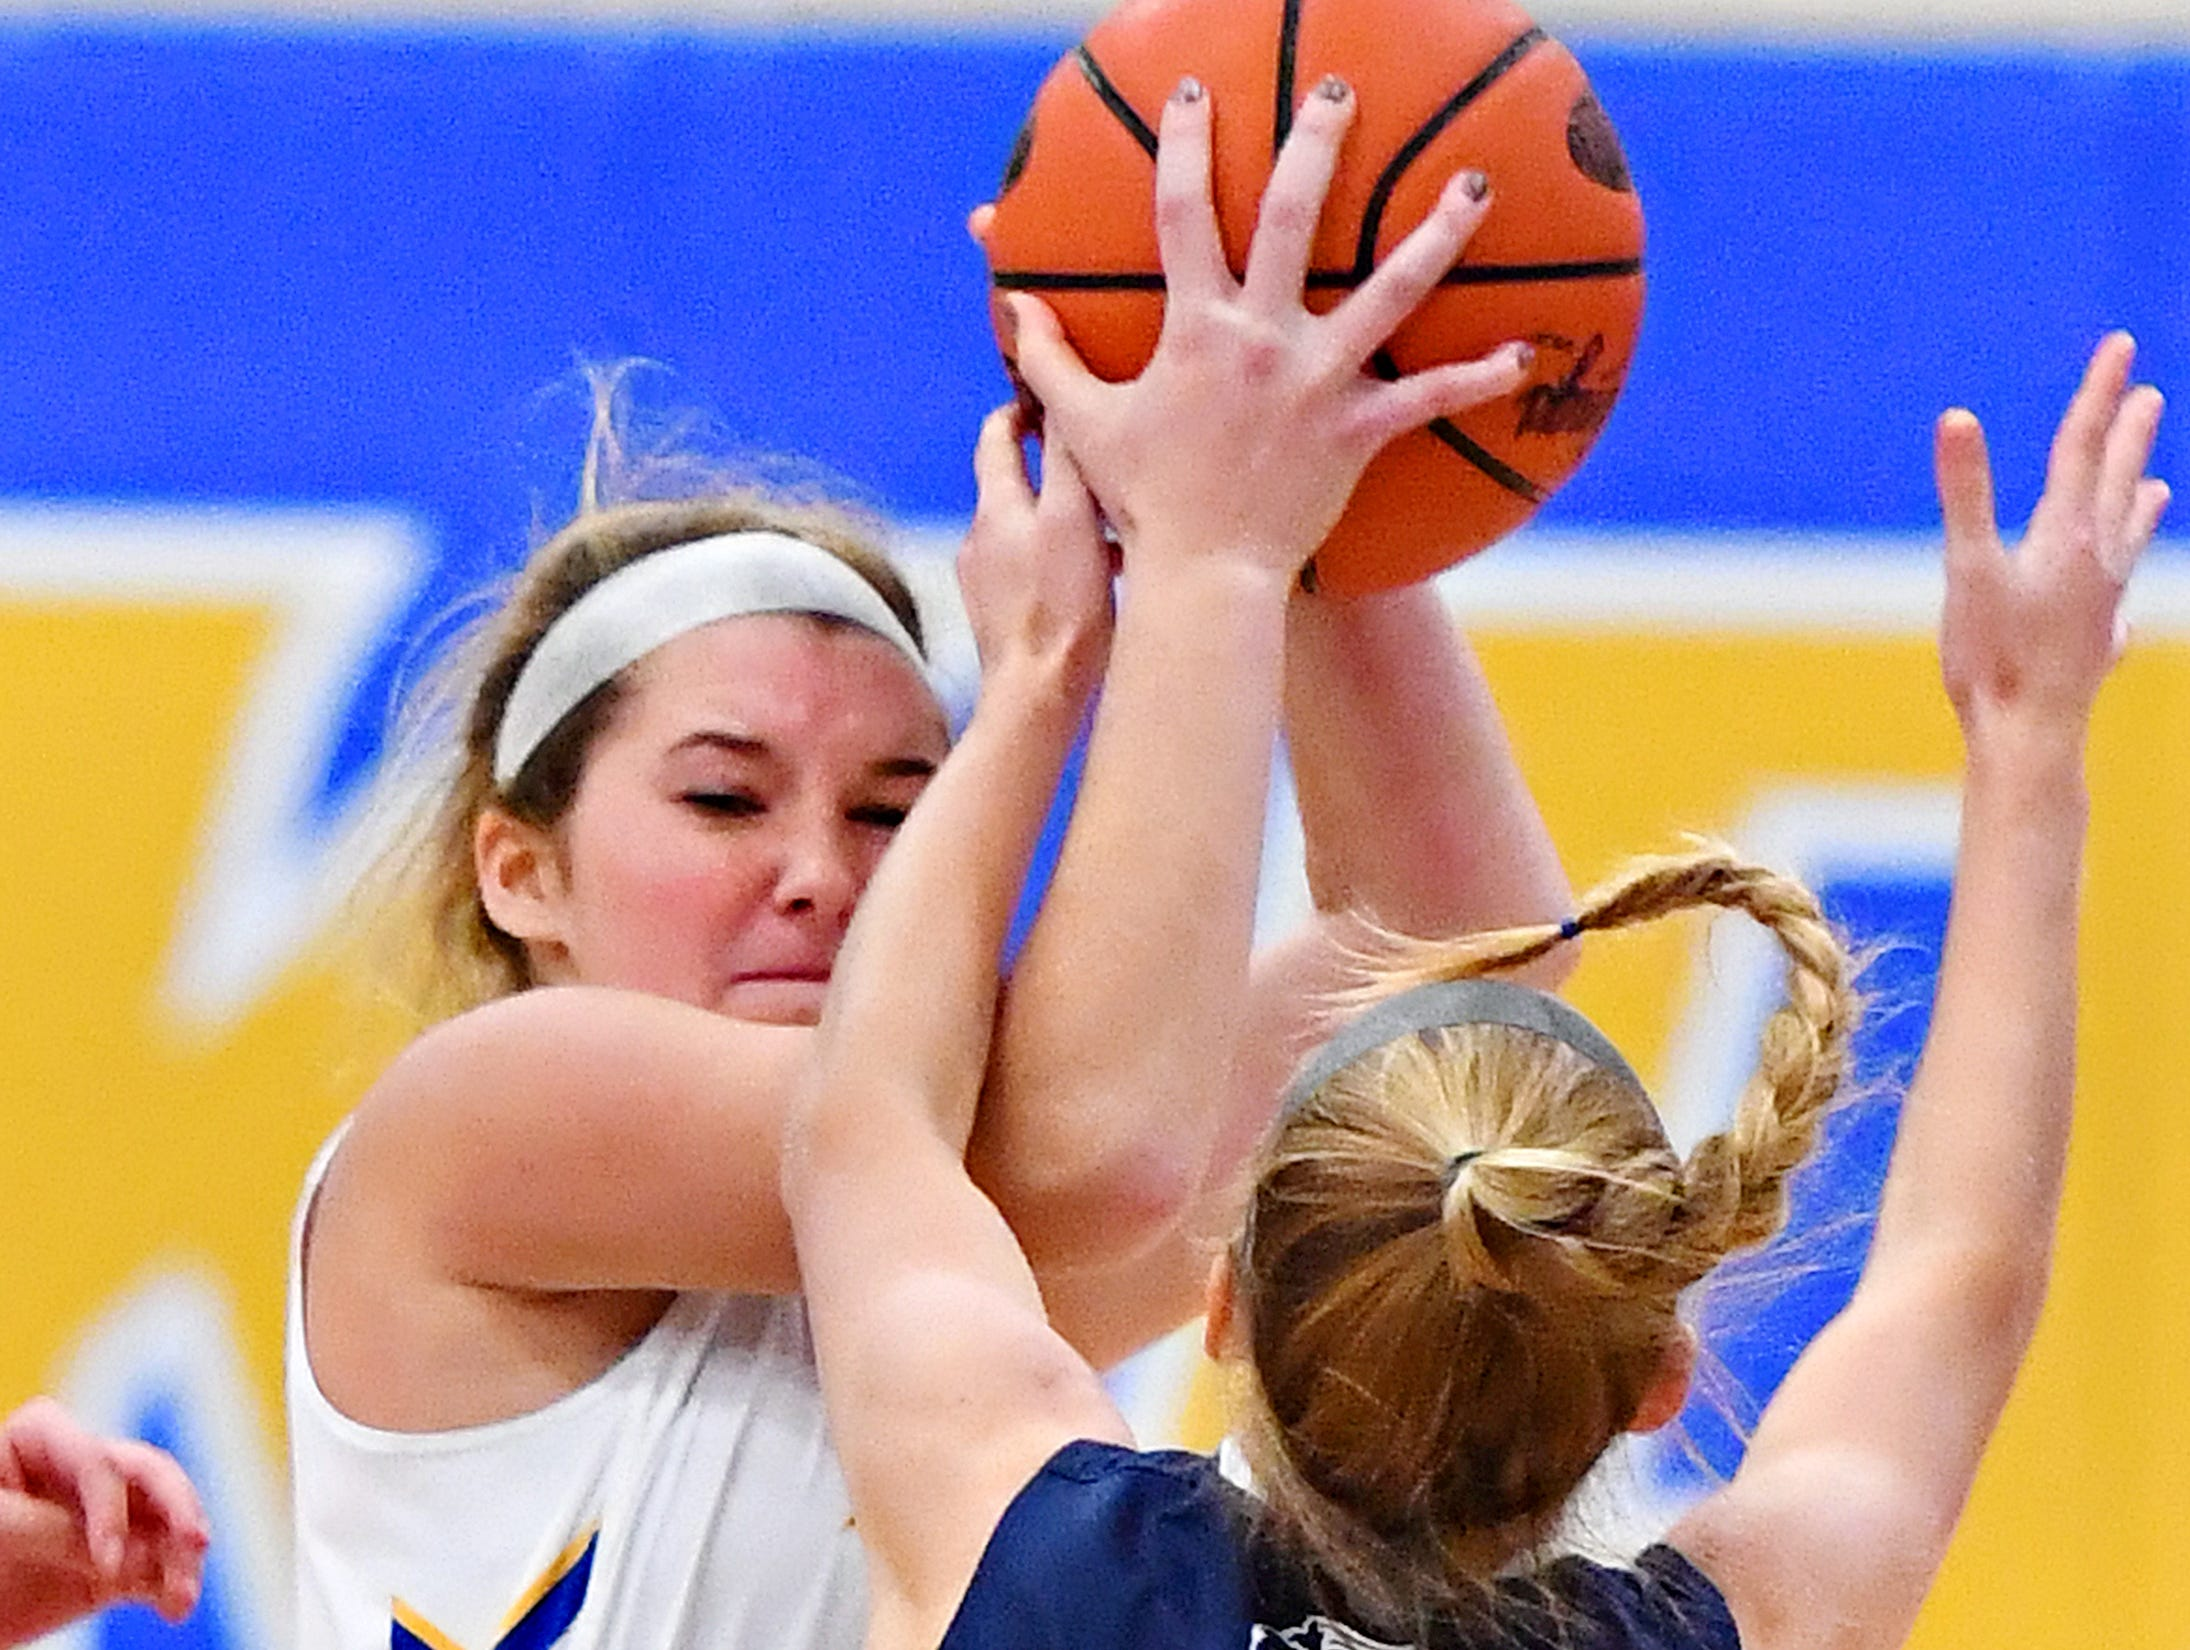 Kennard-Dale's Mikayla Hostler, left, works to get the ball past Camp Hill's Ava Brackett during girls' basketball action at Kennard-Dale High School in Fawn Grove, Wednesday, Dec. 12, 2018. Kennard-Dale would win the game 47-28. Dawn J. Sagert photo